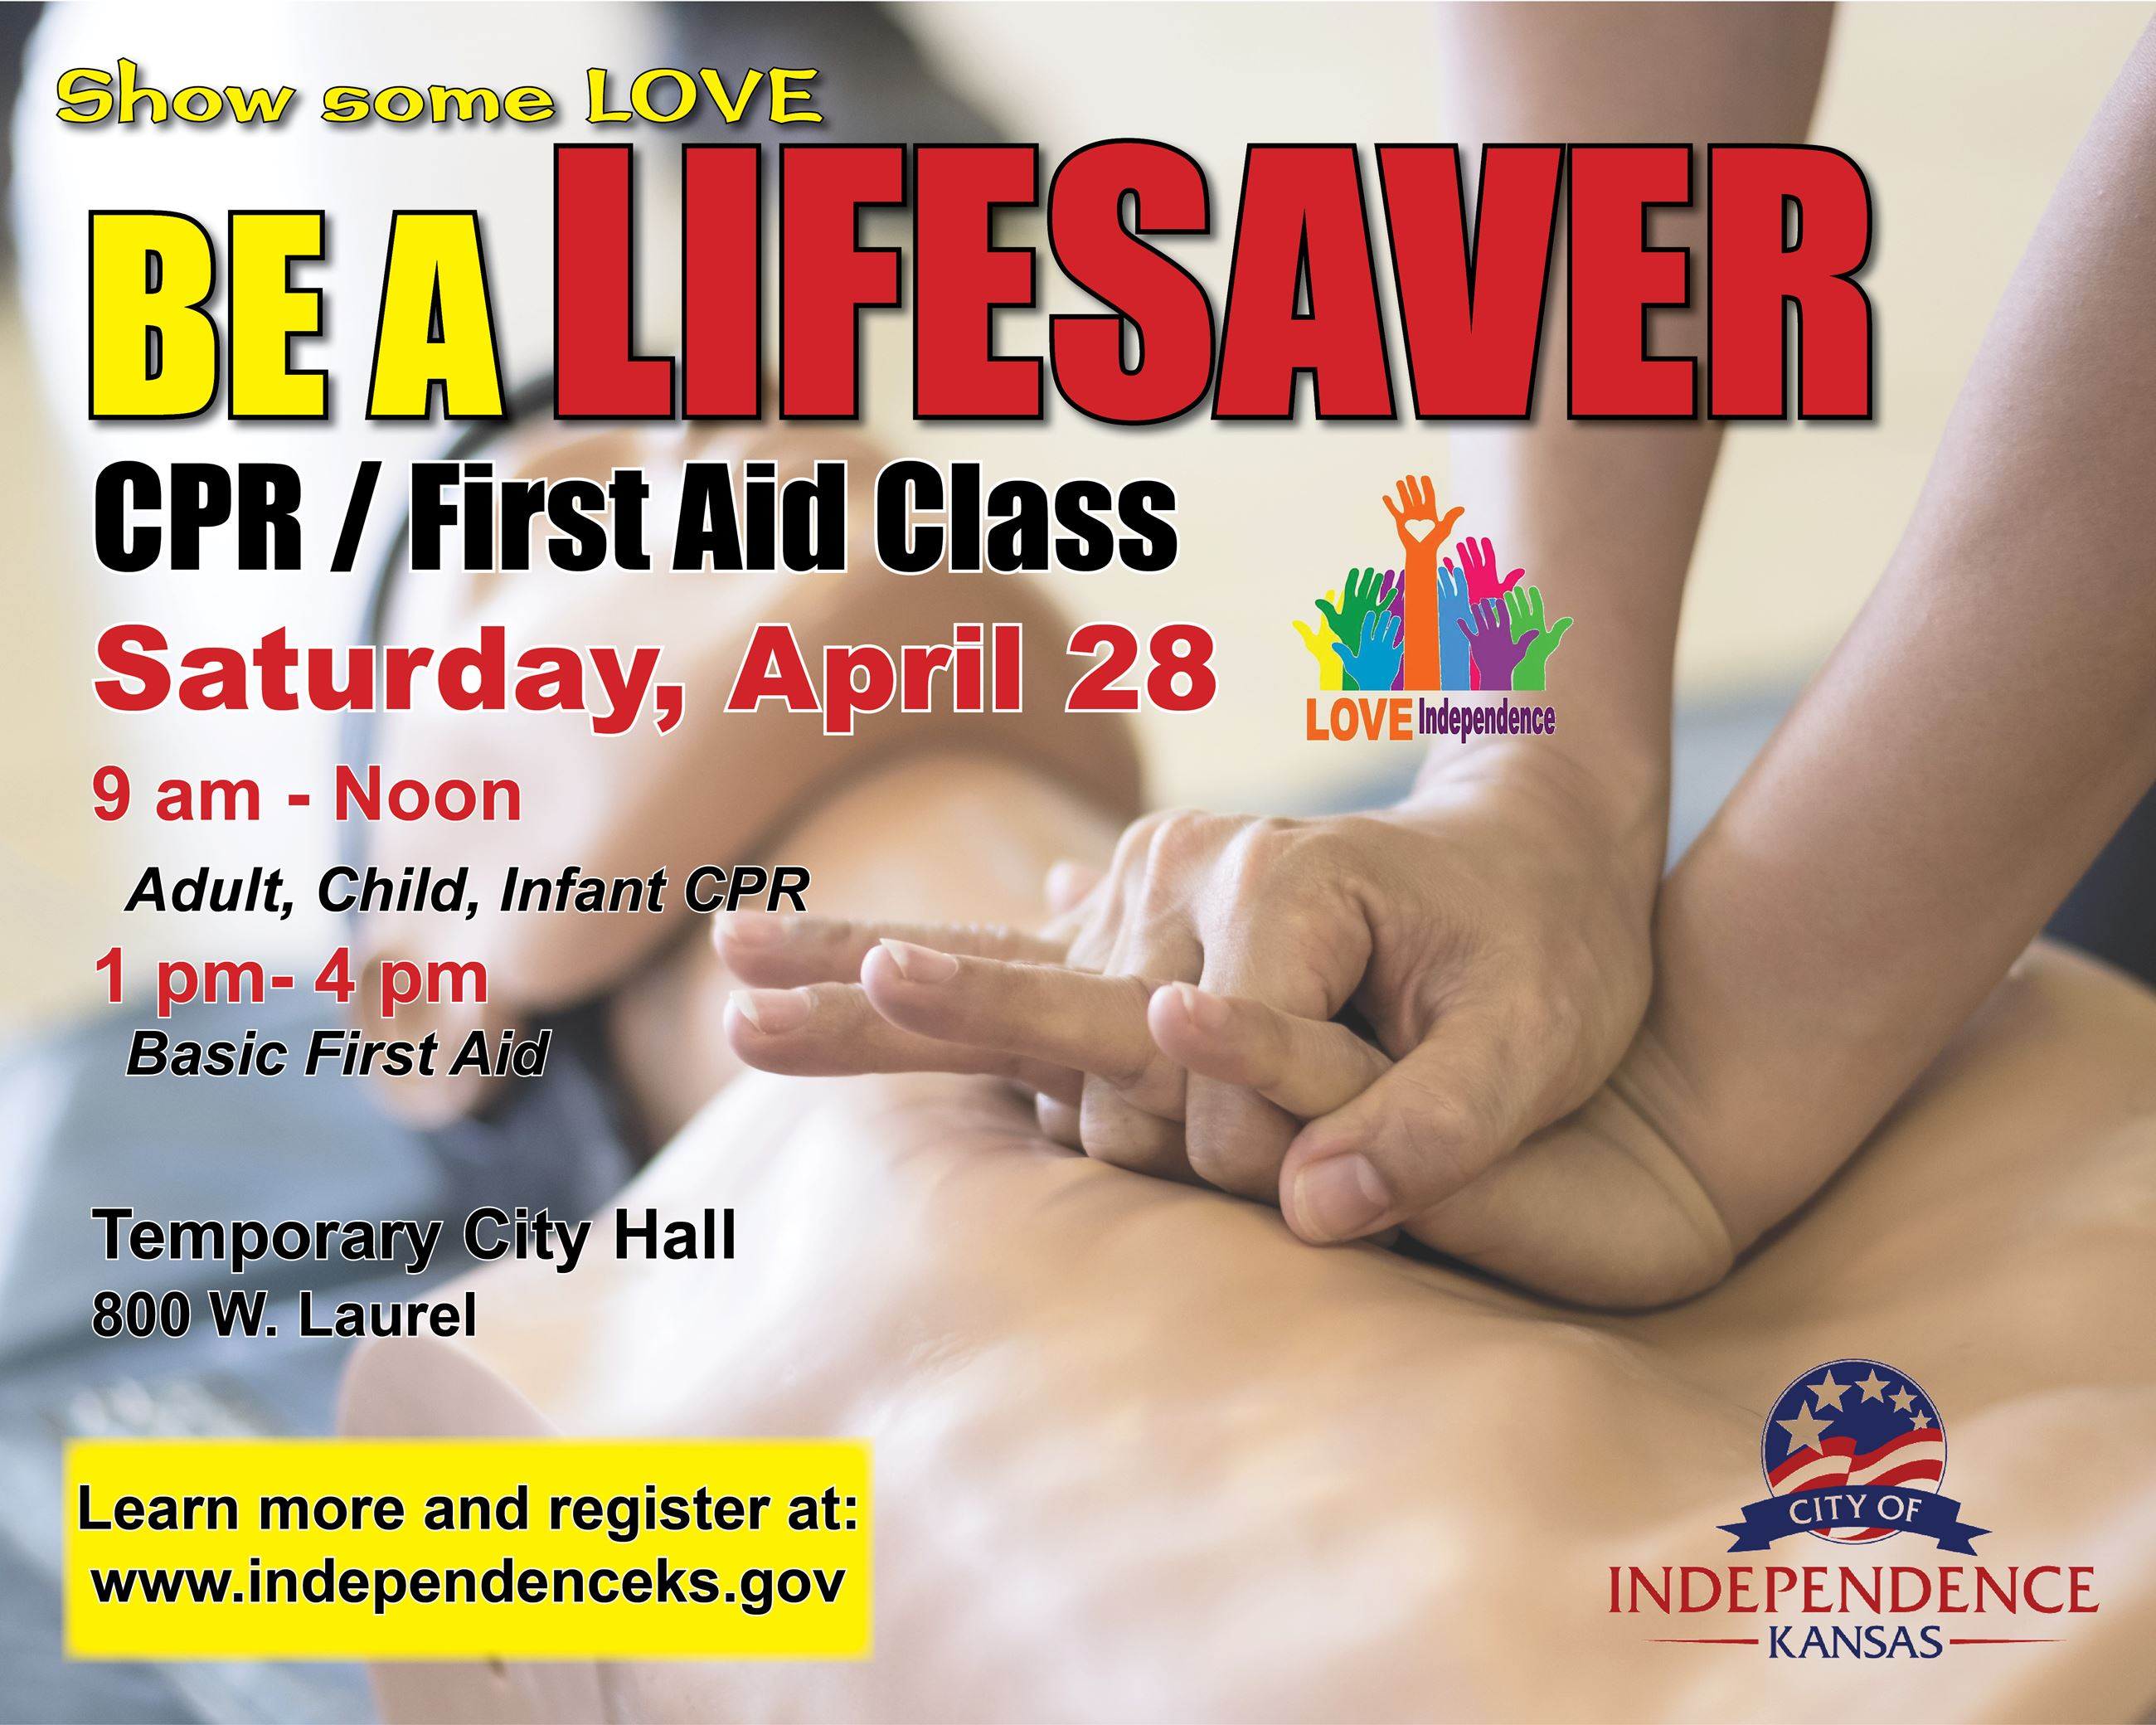 City of Indy CPR Class